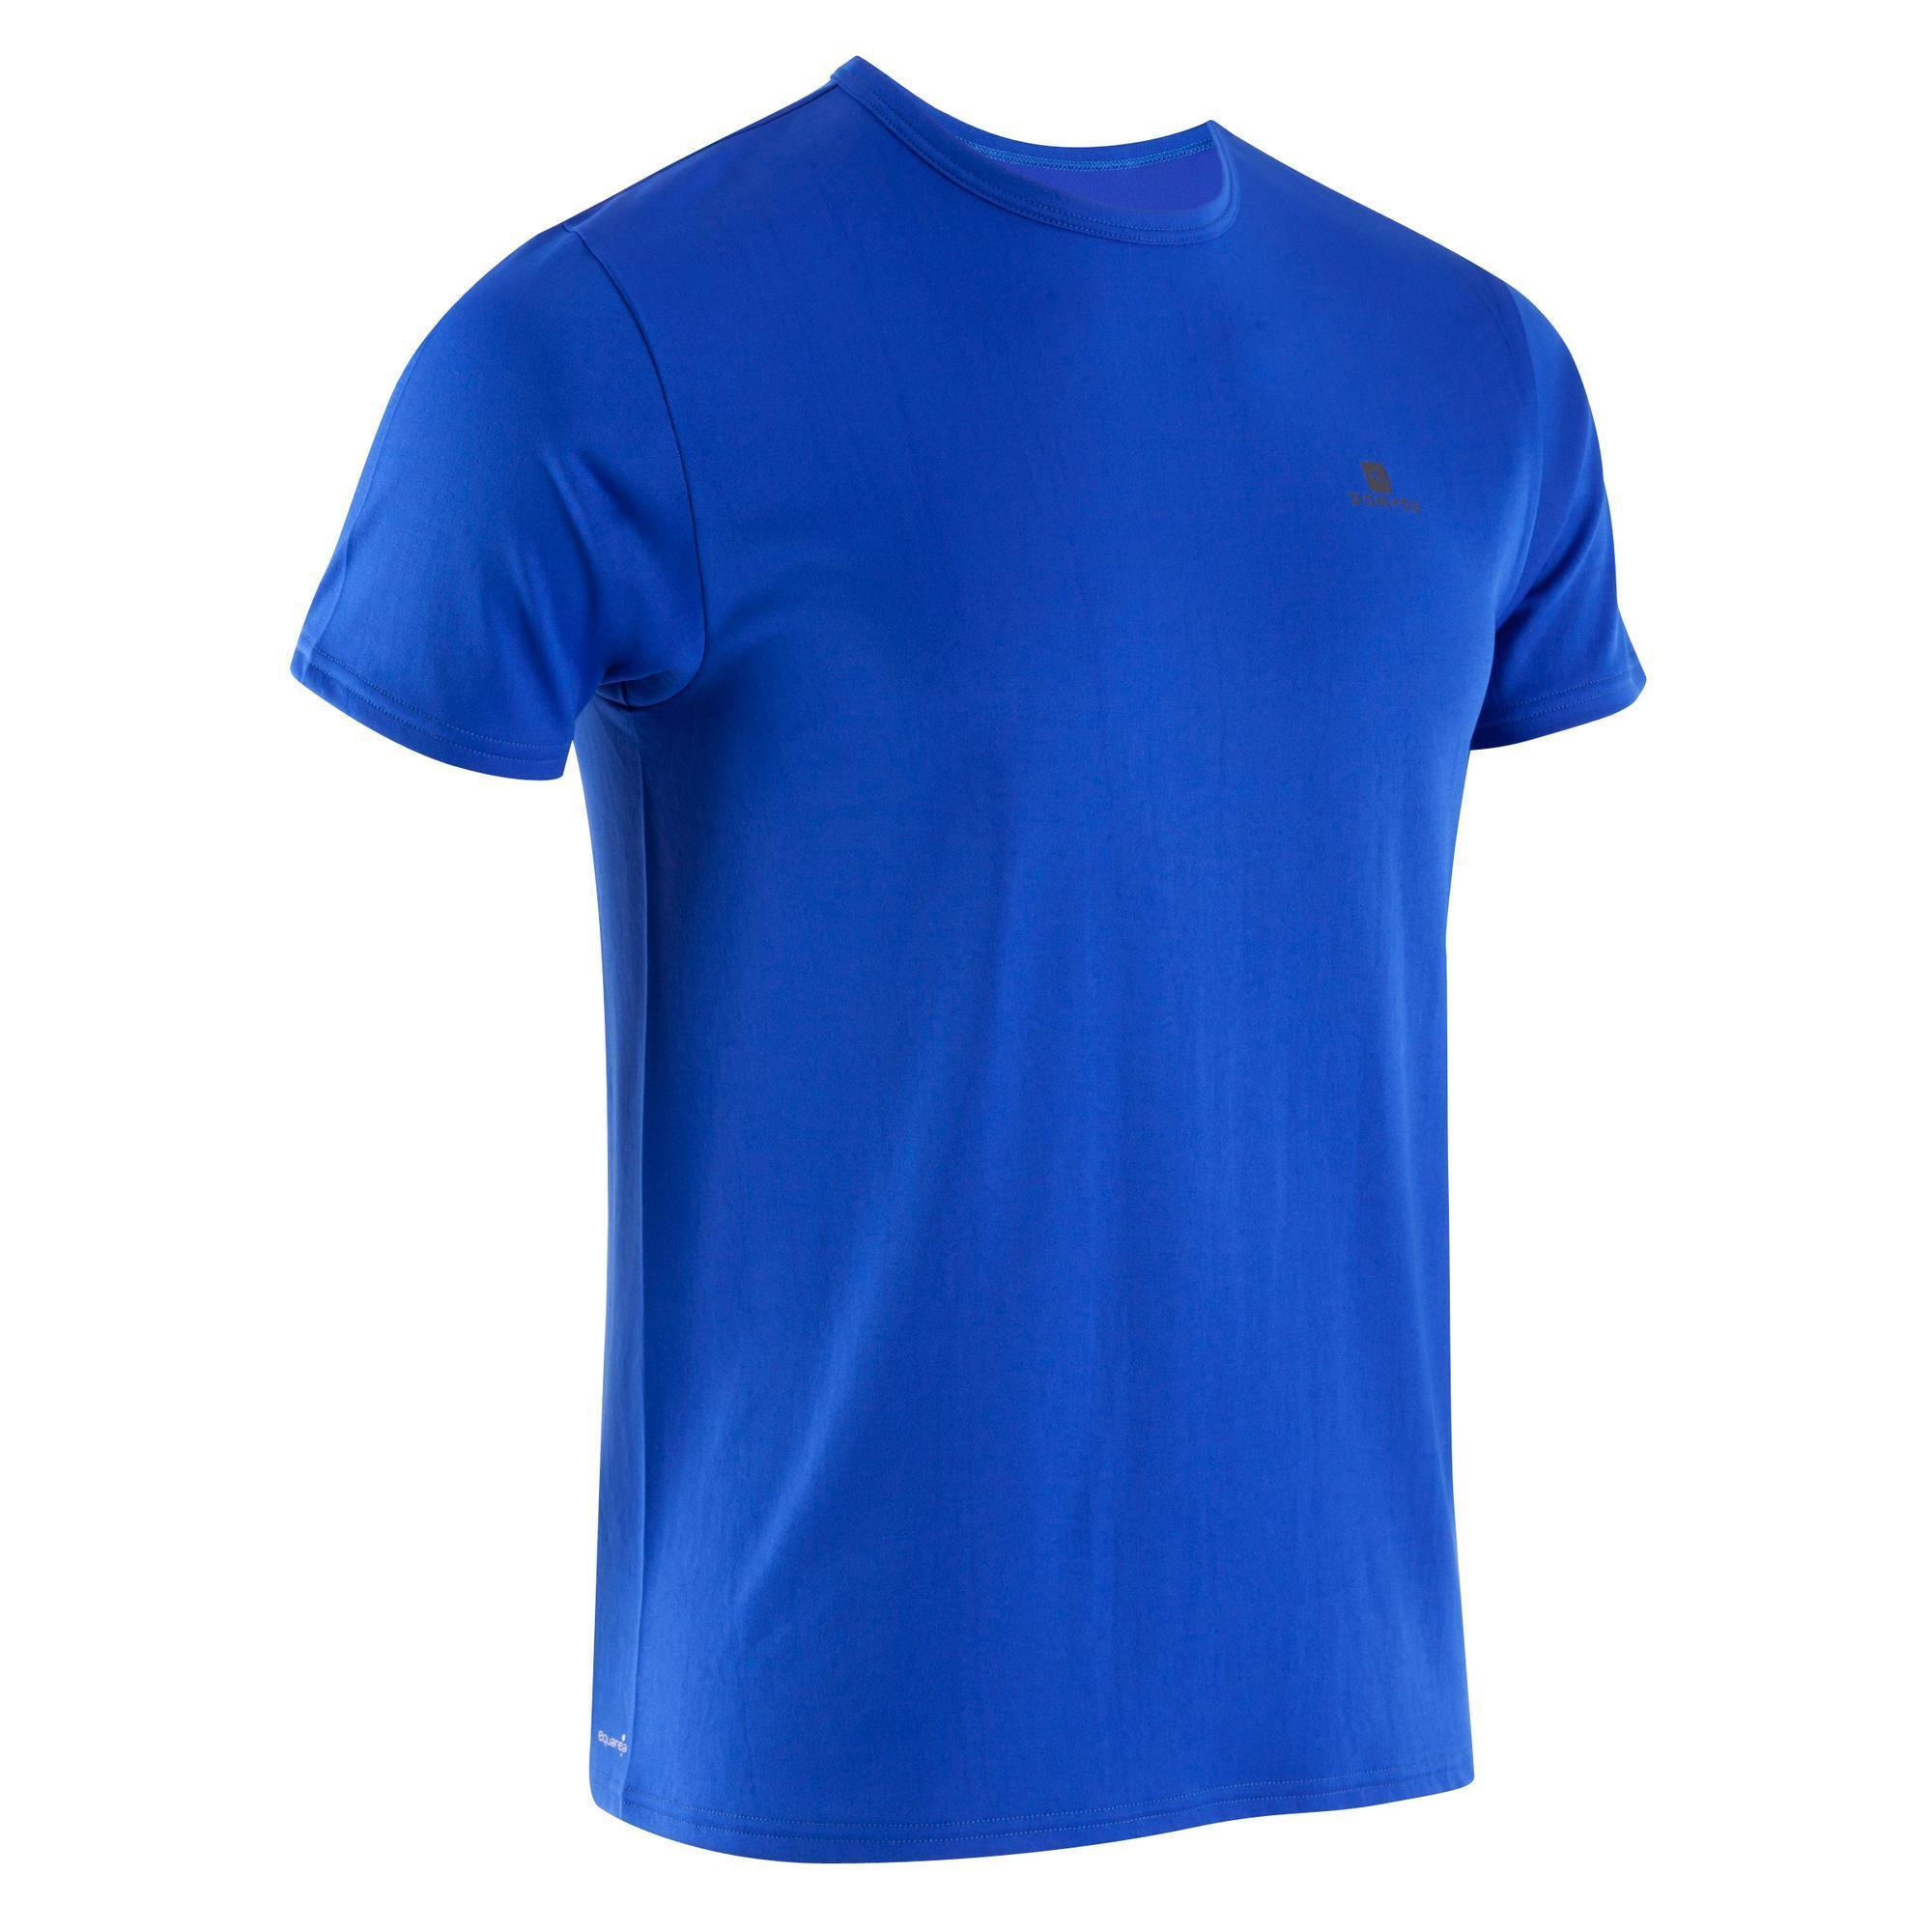 t shirt energy fitness homme bleu domyos by decathlon. Black Bedroom Furniture Sets. Home Design Ideas